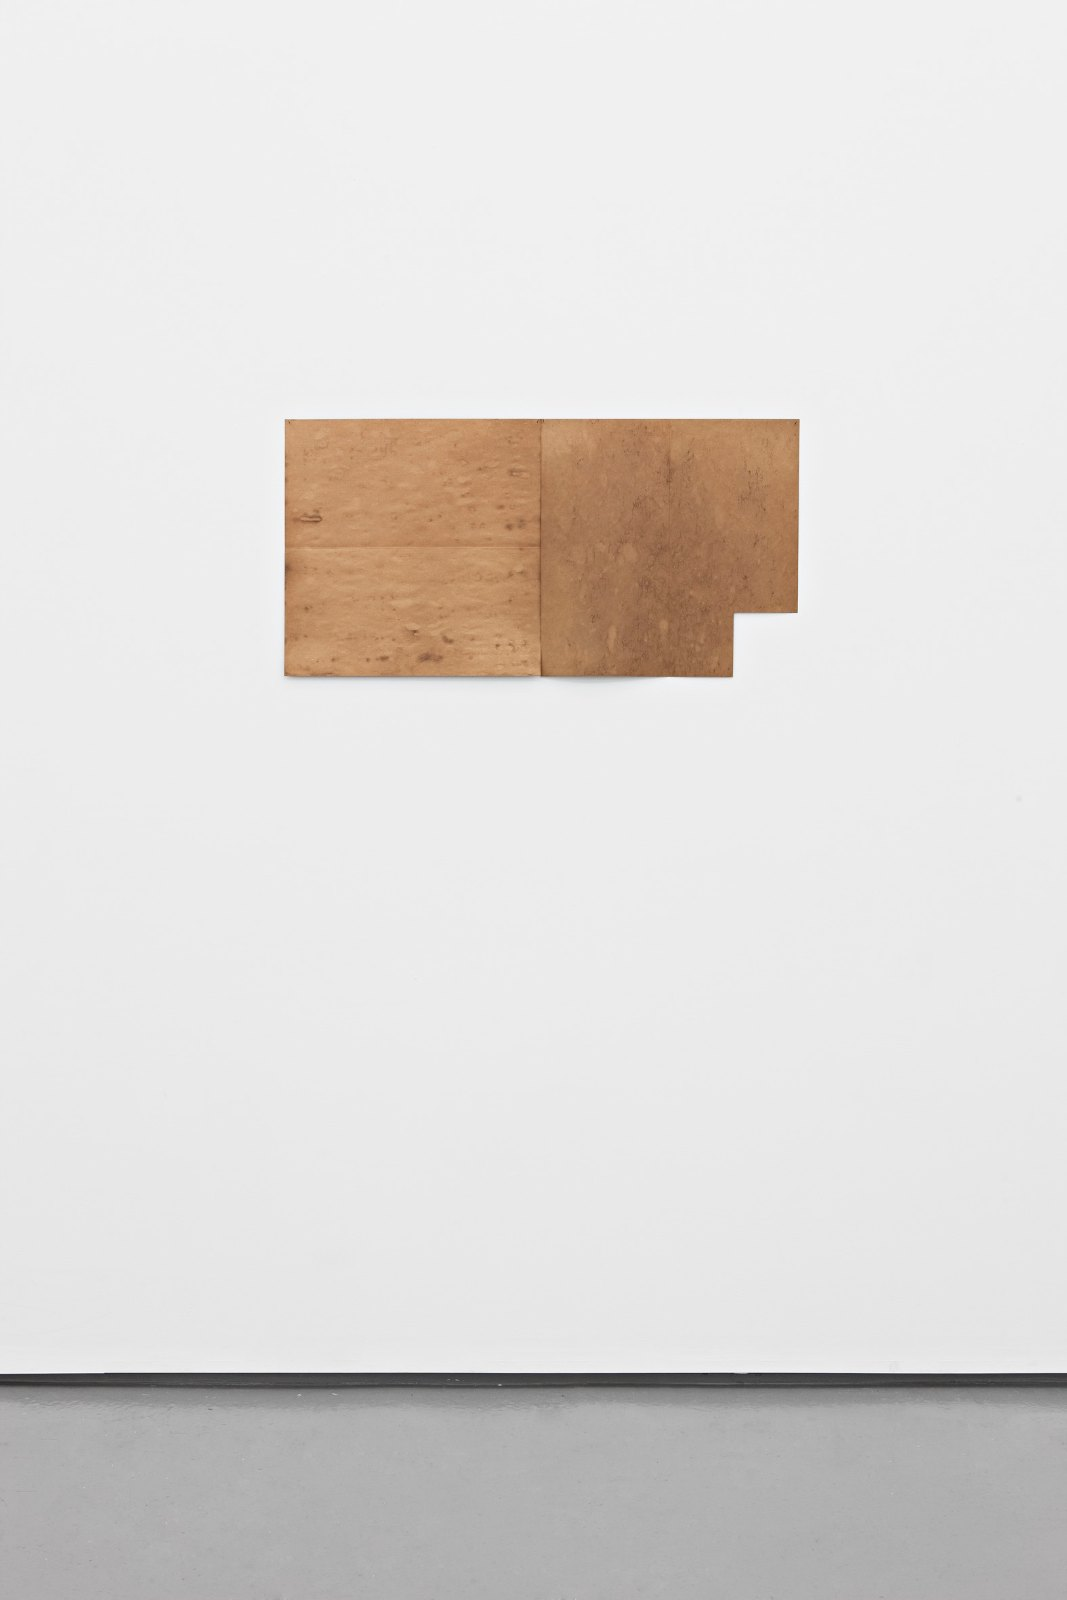 Untitled, 1973/74 (2 parts), asphaltum and paper, each 45 x 45 cm